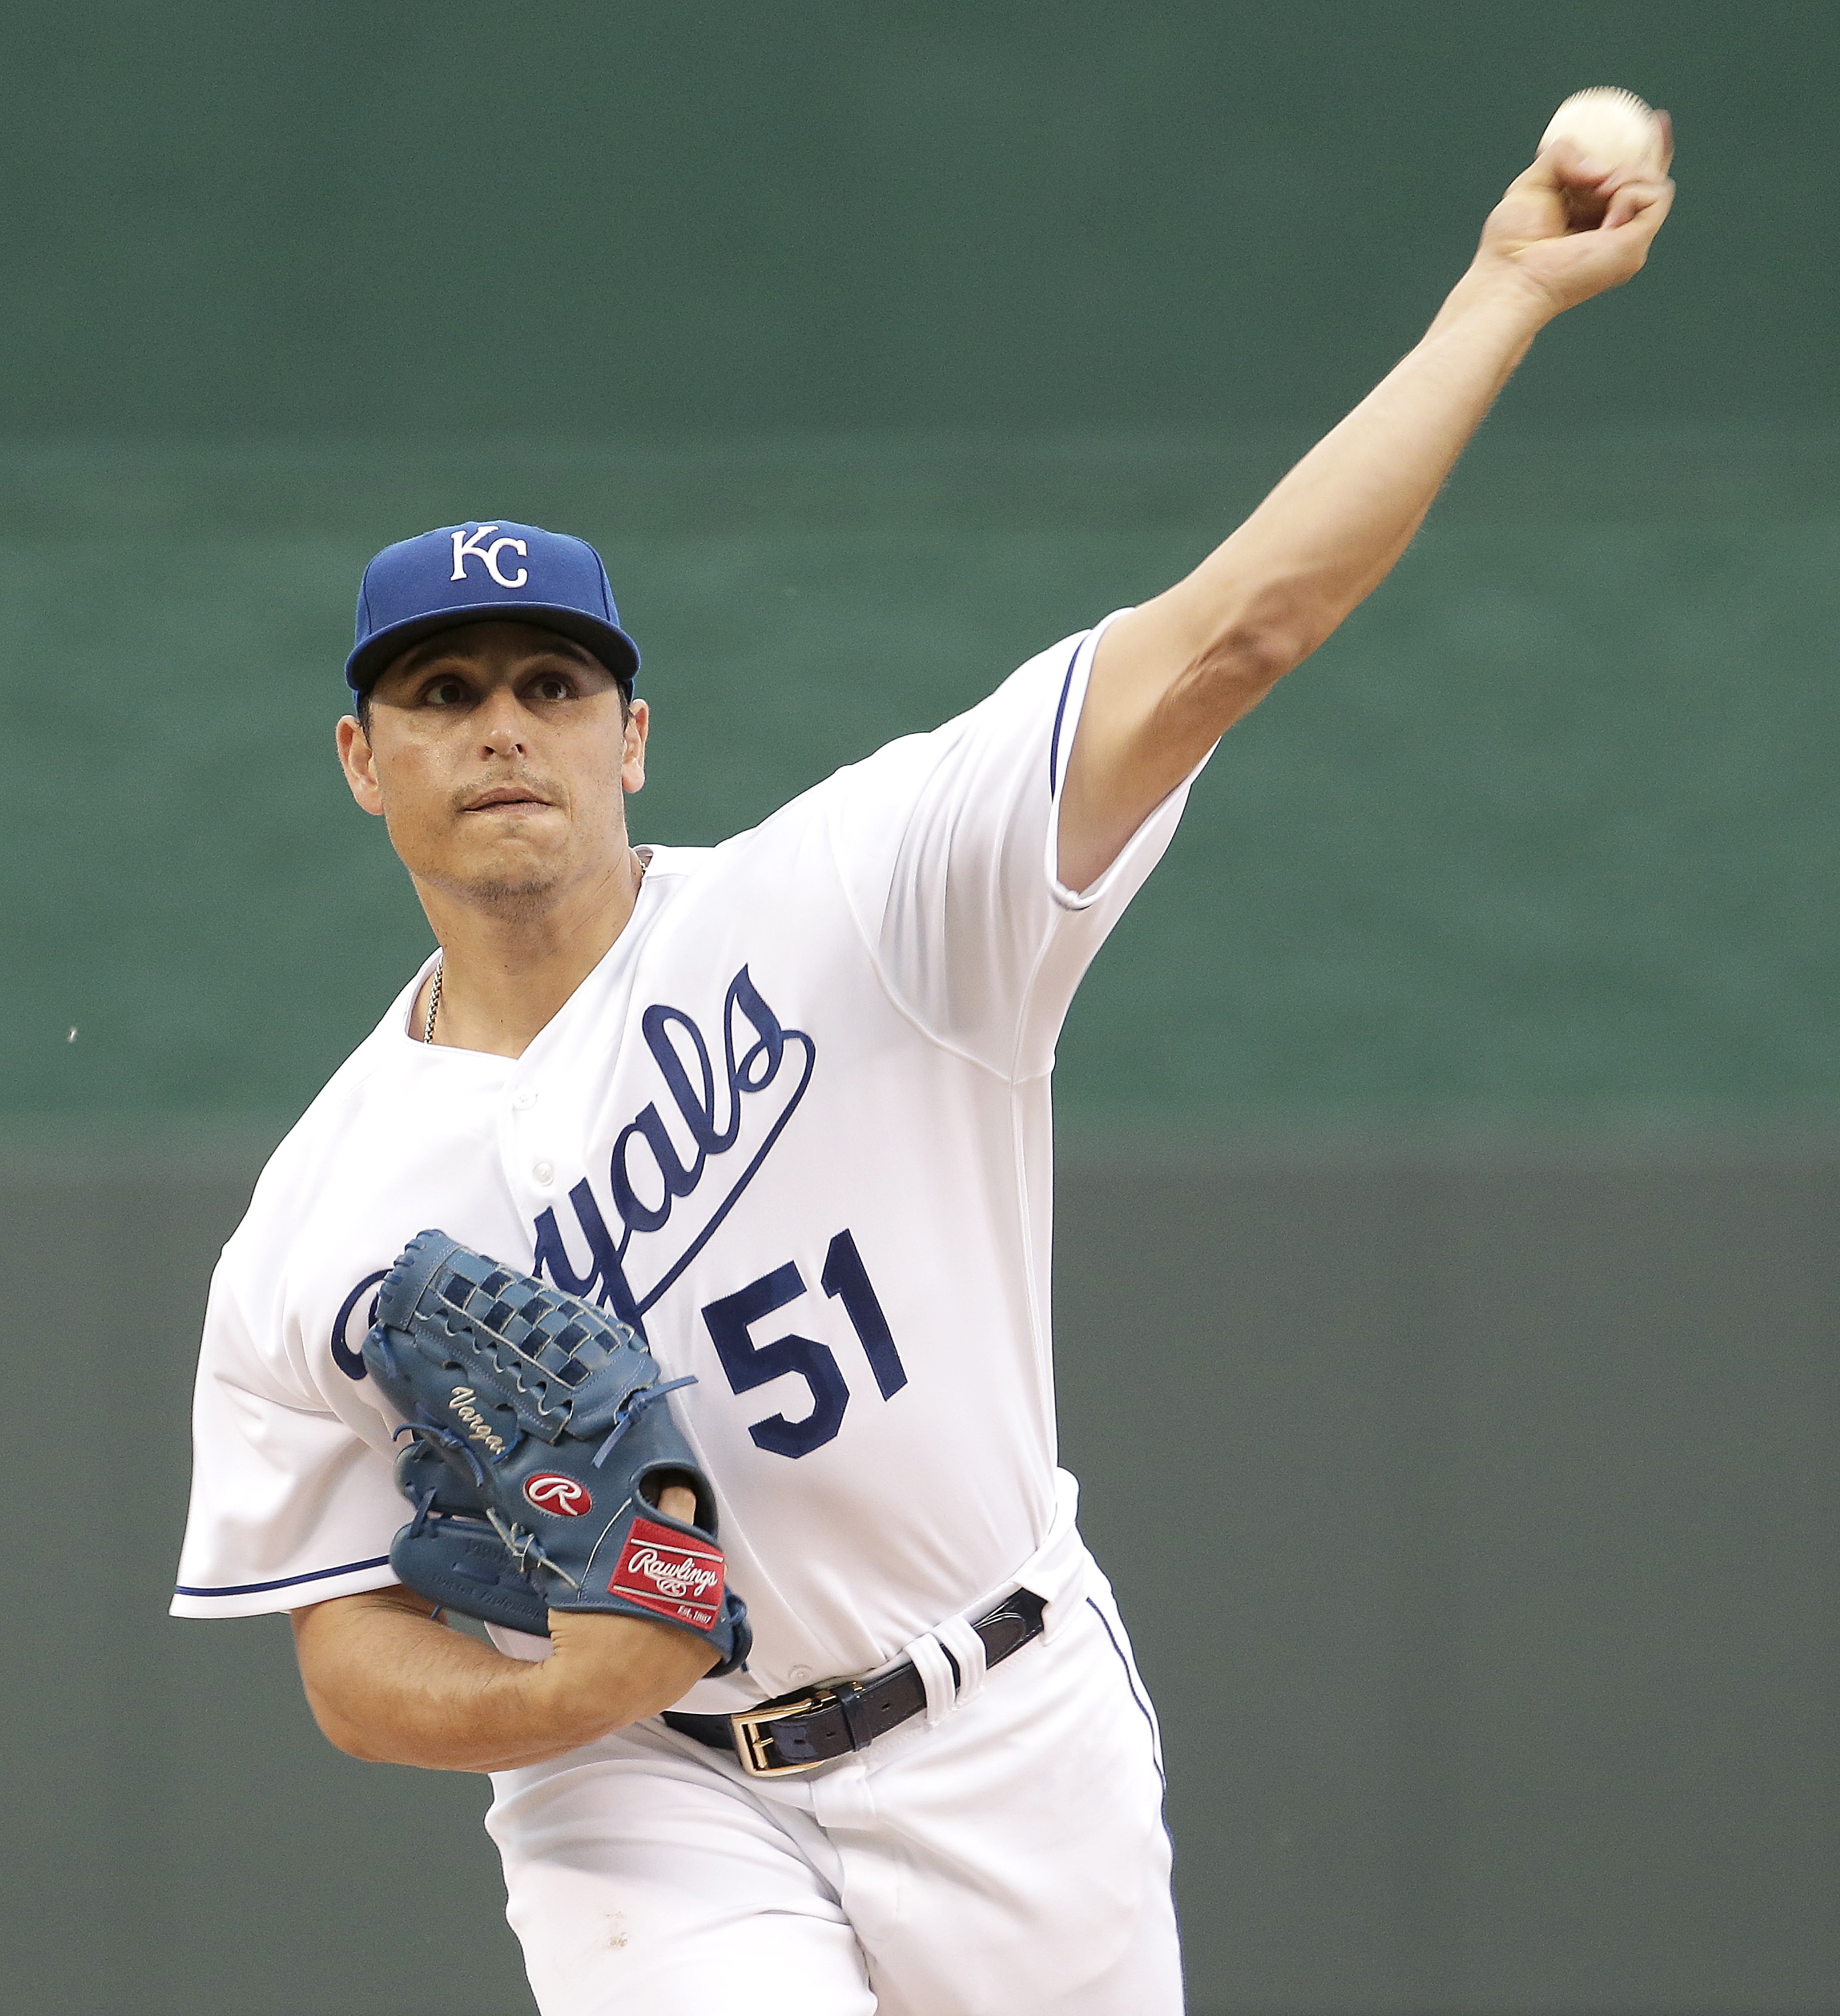 Kansas City Royals starting pitcher Jason Vargas throws during the first inning of a baseball game against the Cleveland Indians, Tuesday, May 5, 2015, in Kansas City, Mo. (AP Photo/Charlie Riedel)